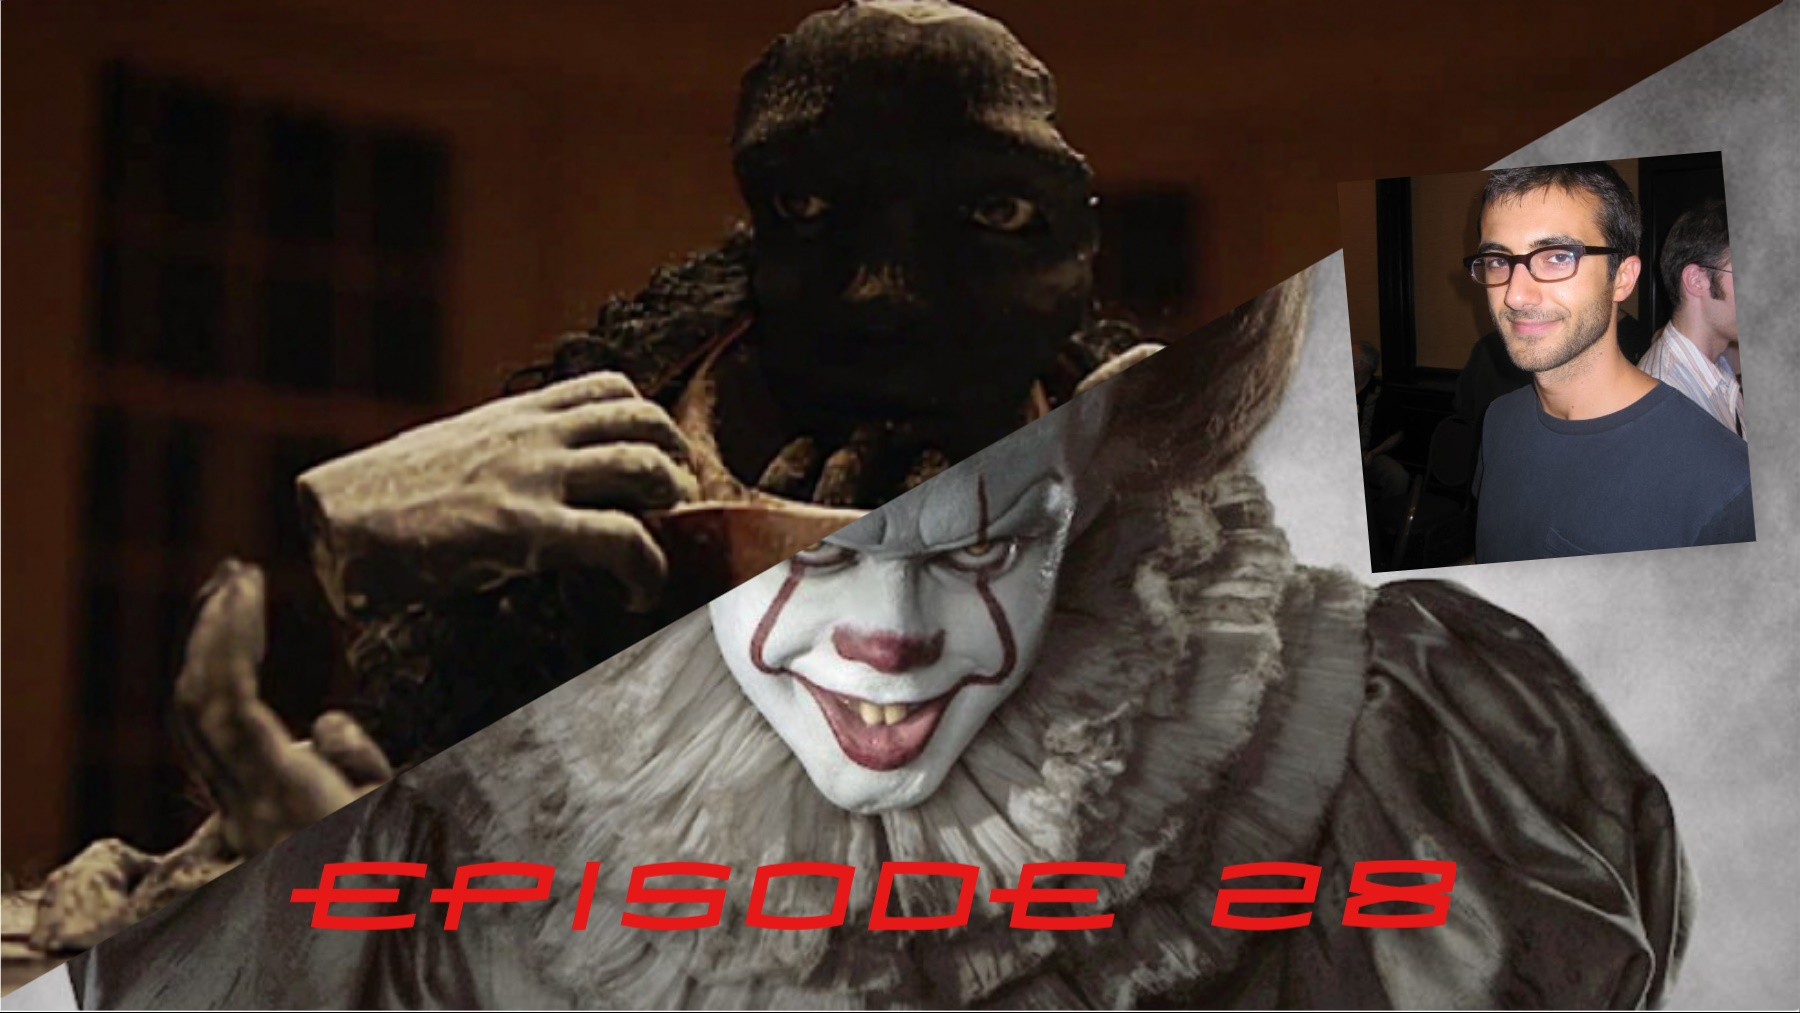 Episode 28: IT impressions and A Press Conference with Channel Zero EP Nick Antosca